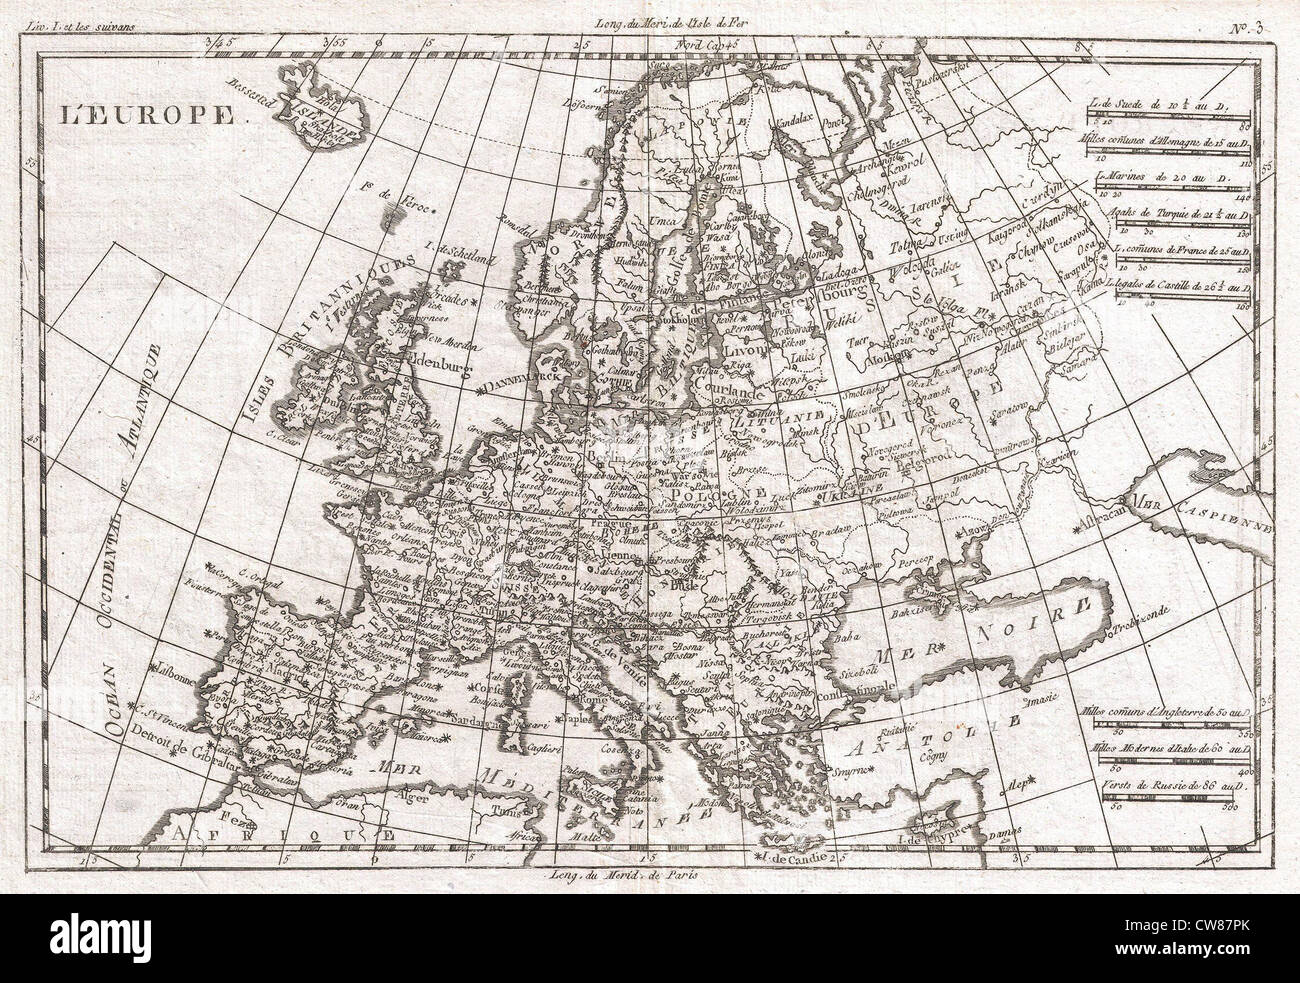 Map Of Europe 1780.1780 Raynal And Bonne Map Of Europe Stock Photo 49968875 Alamy